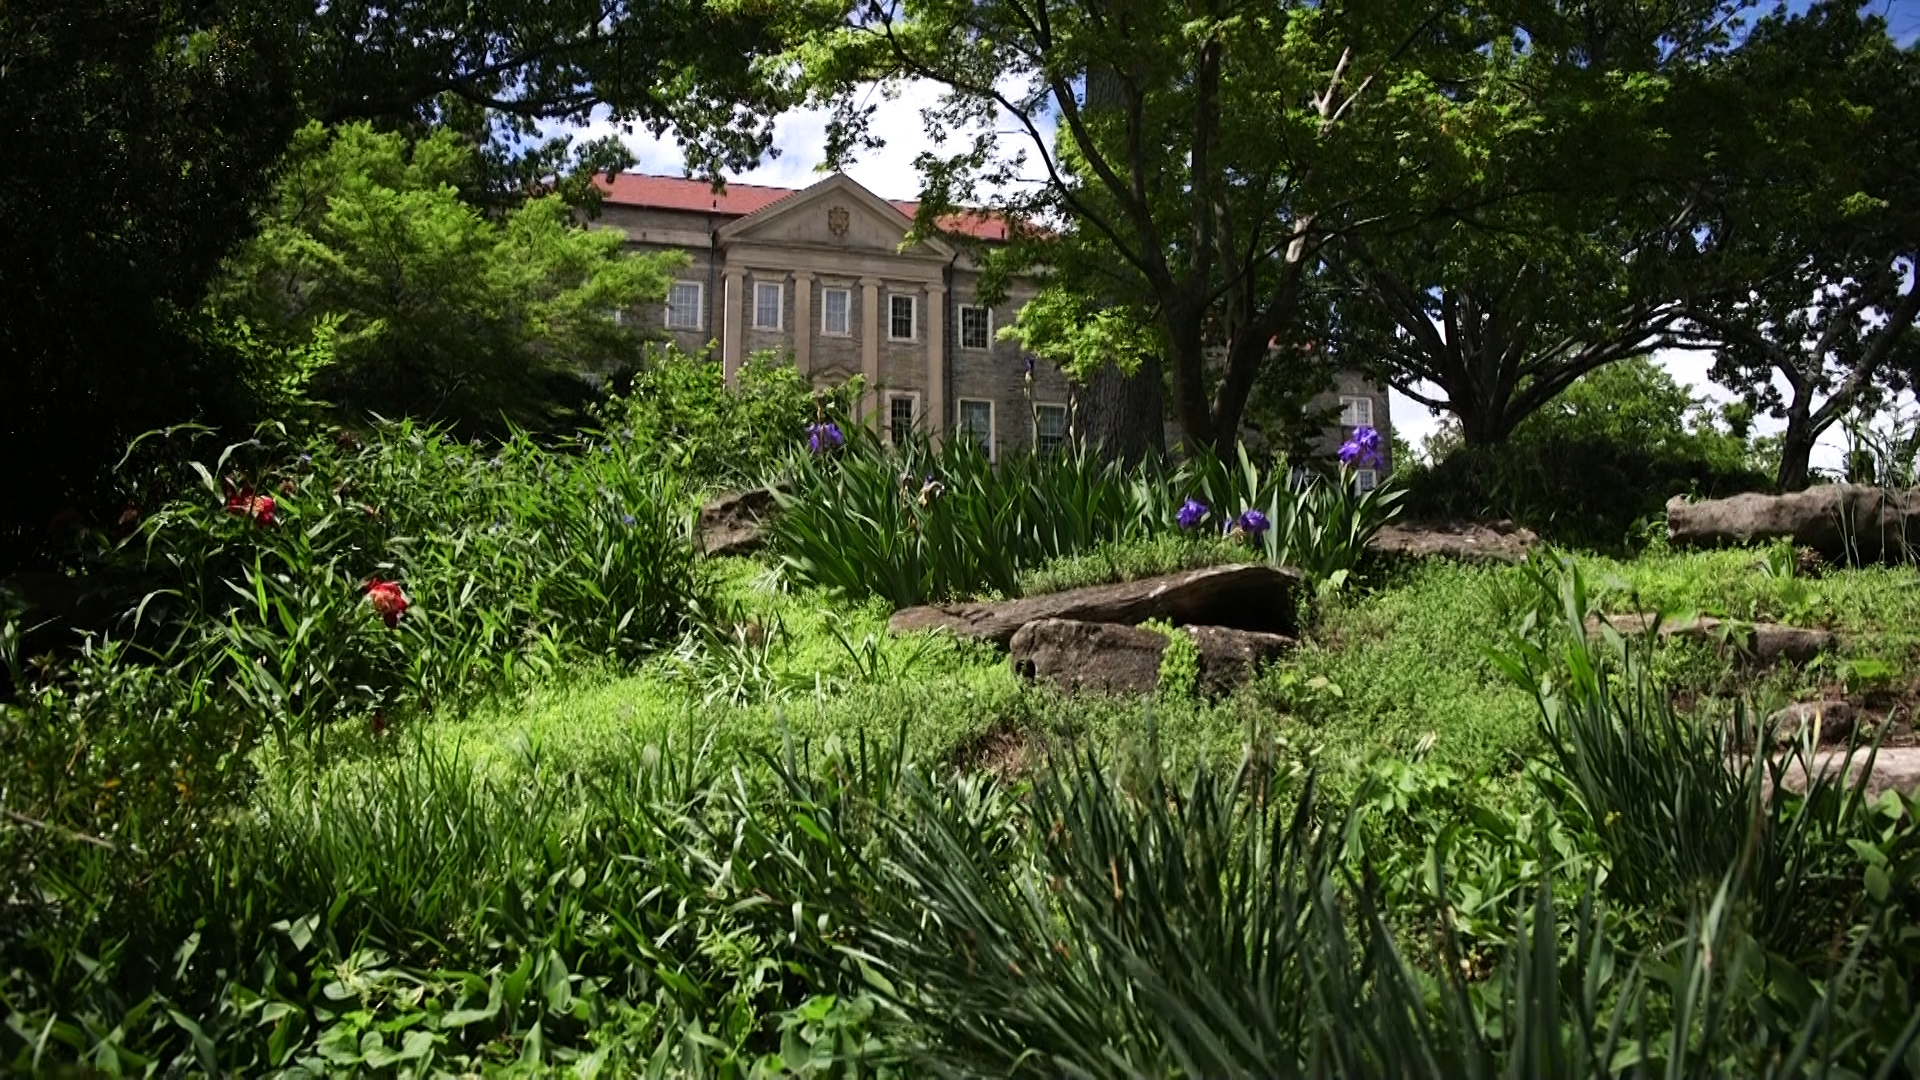 Cheekwood: A Masterpiece by Man & Nature | NPT